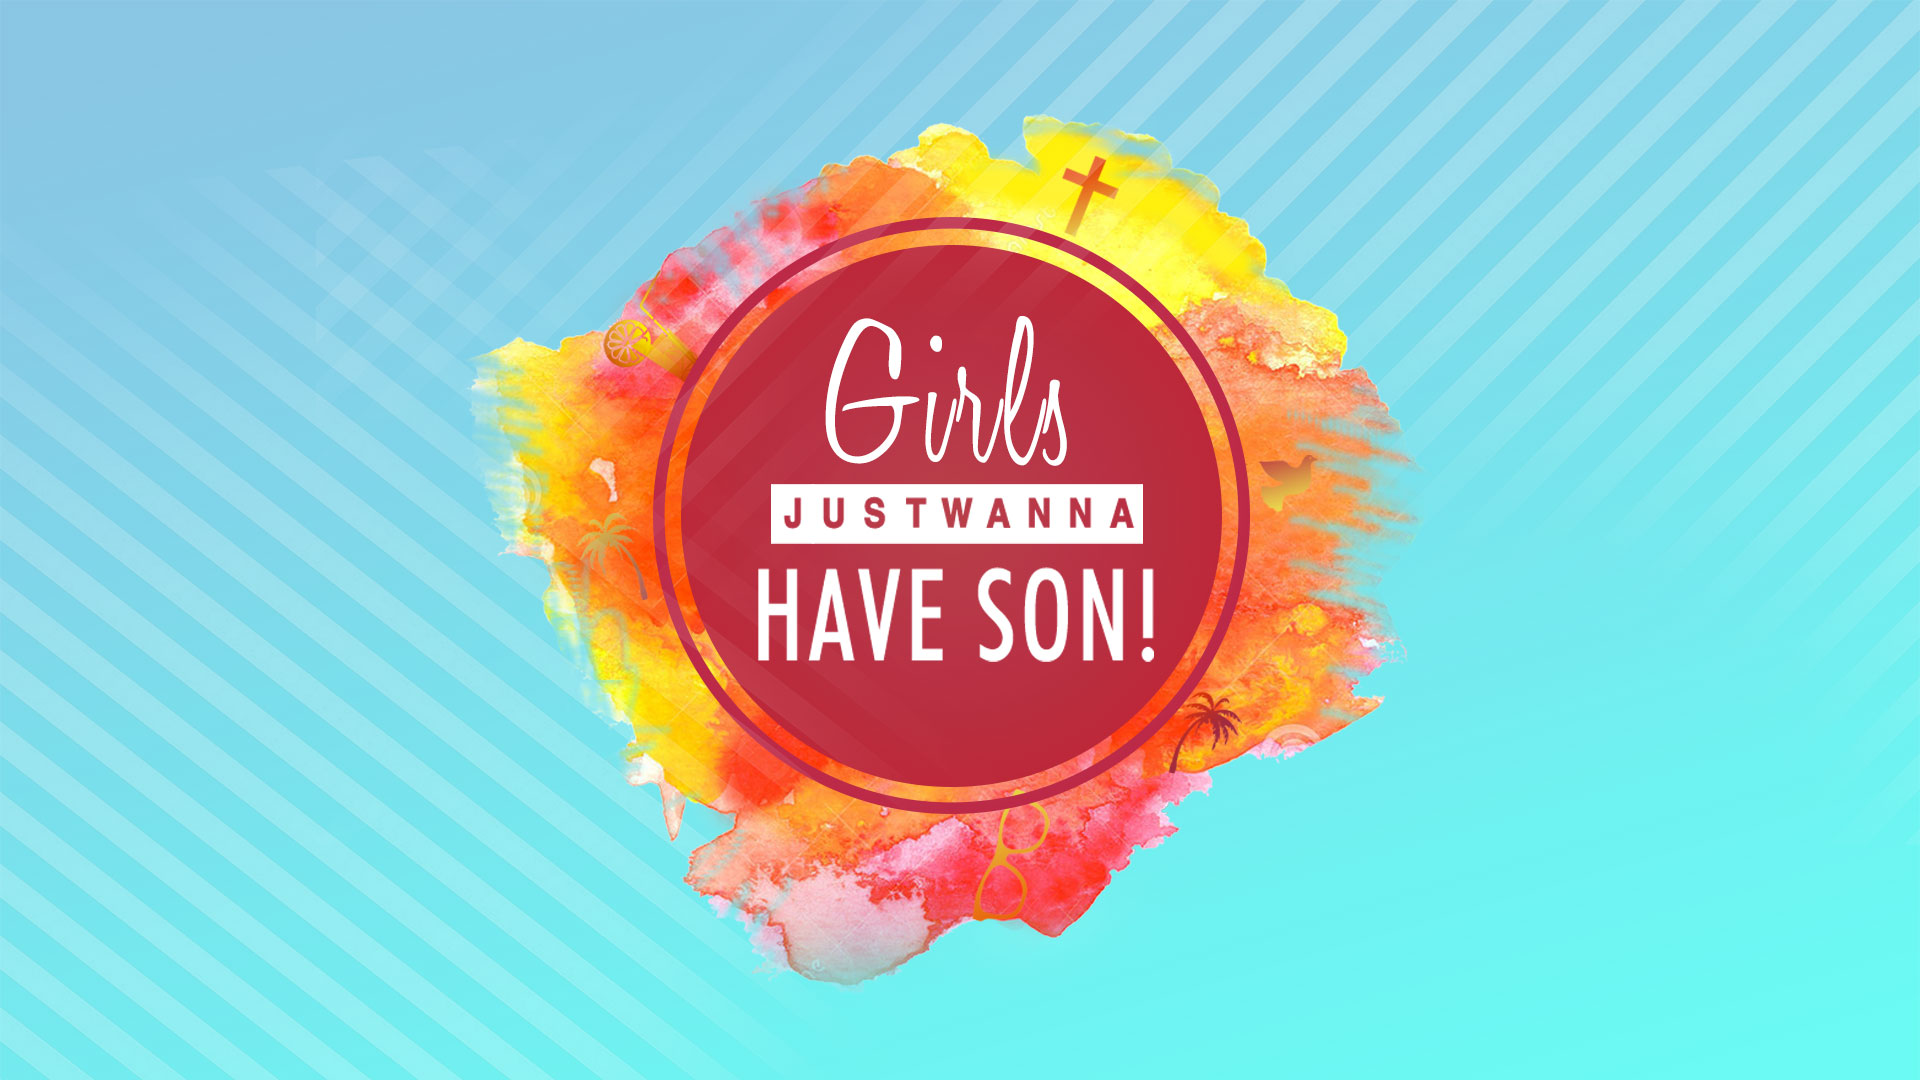 Listen to Girls Just Wanna Have Son